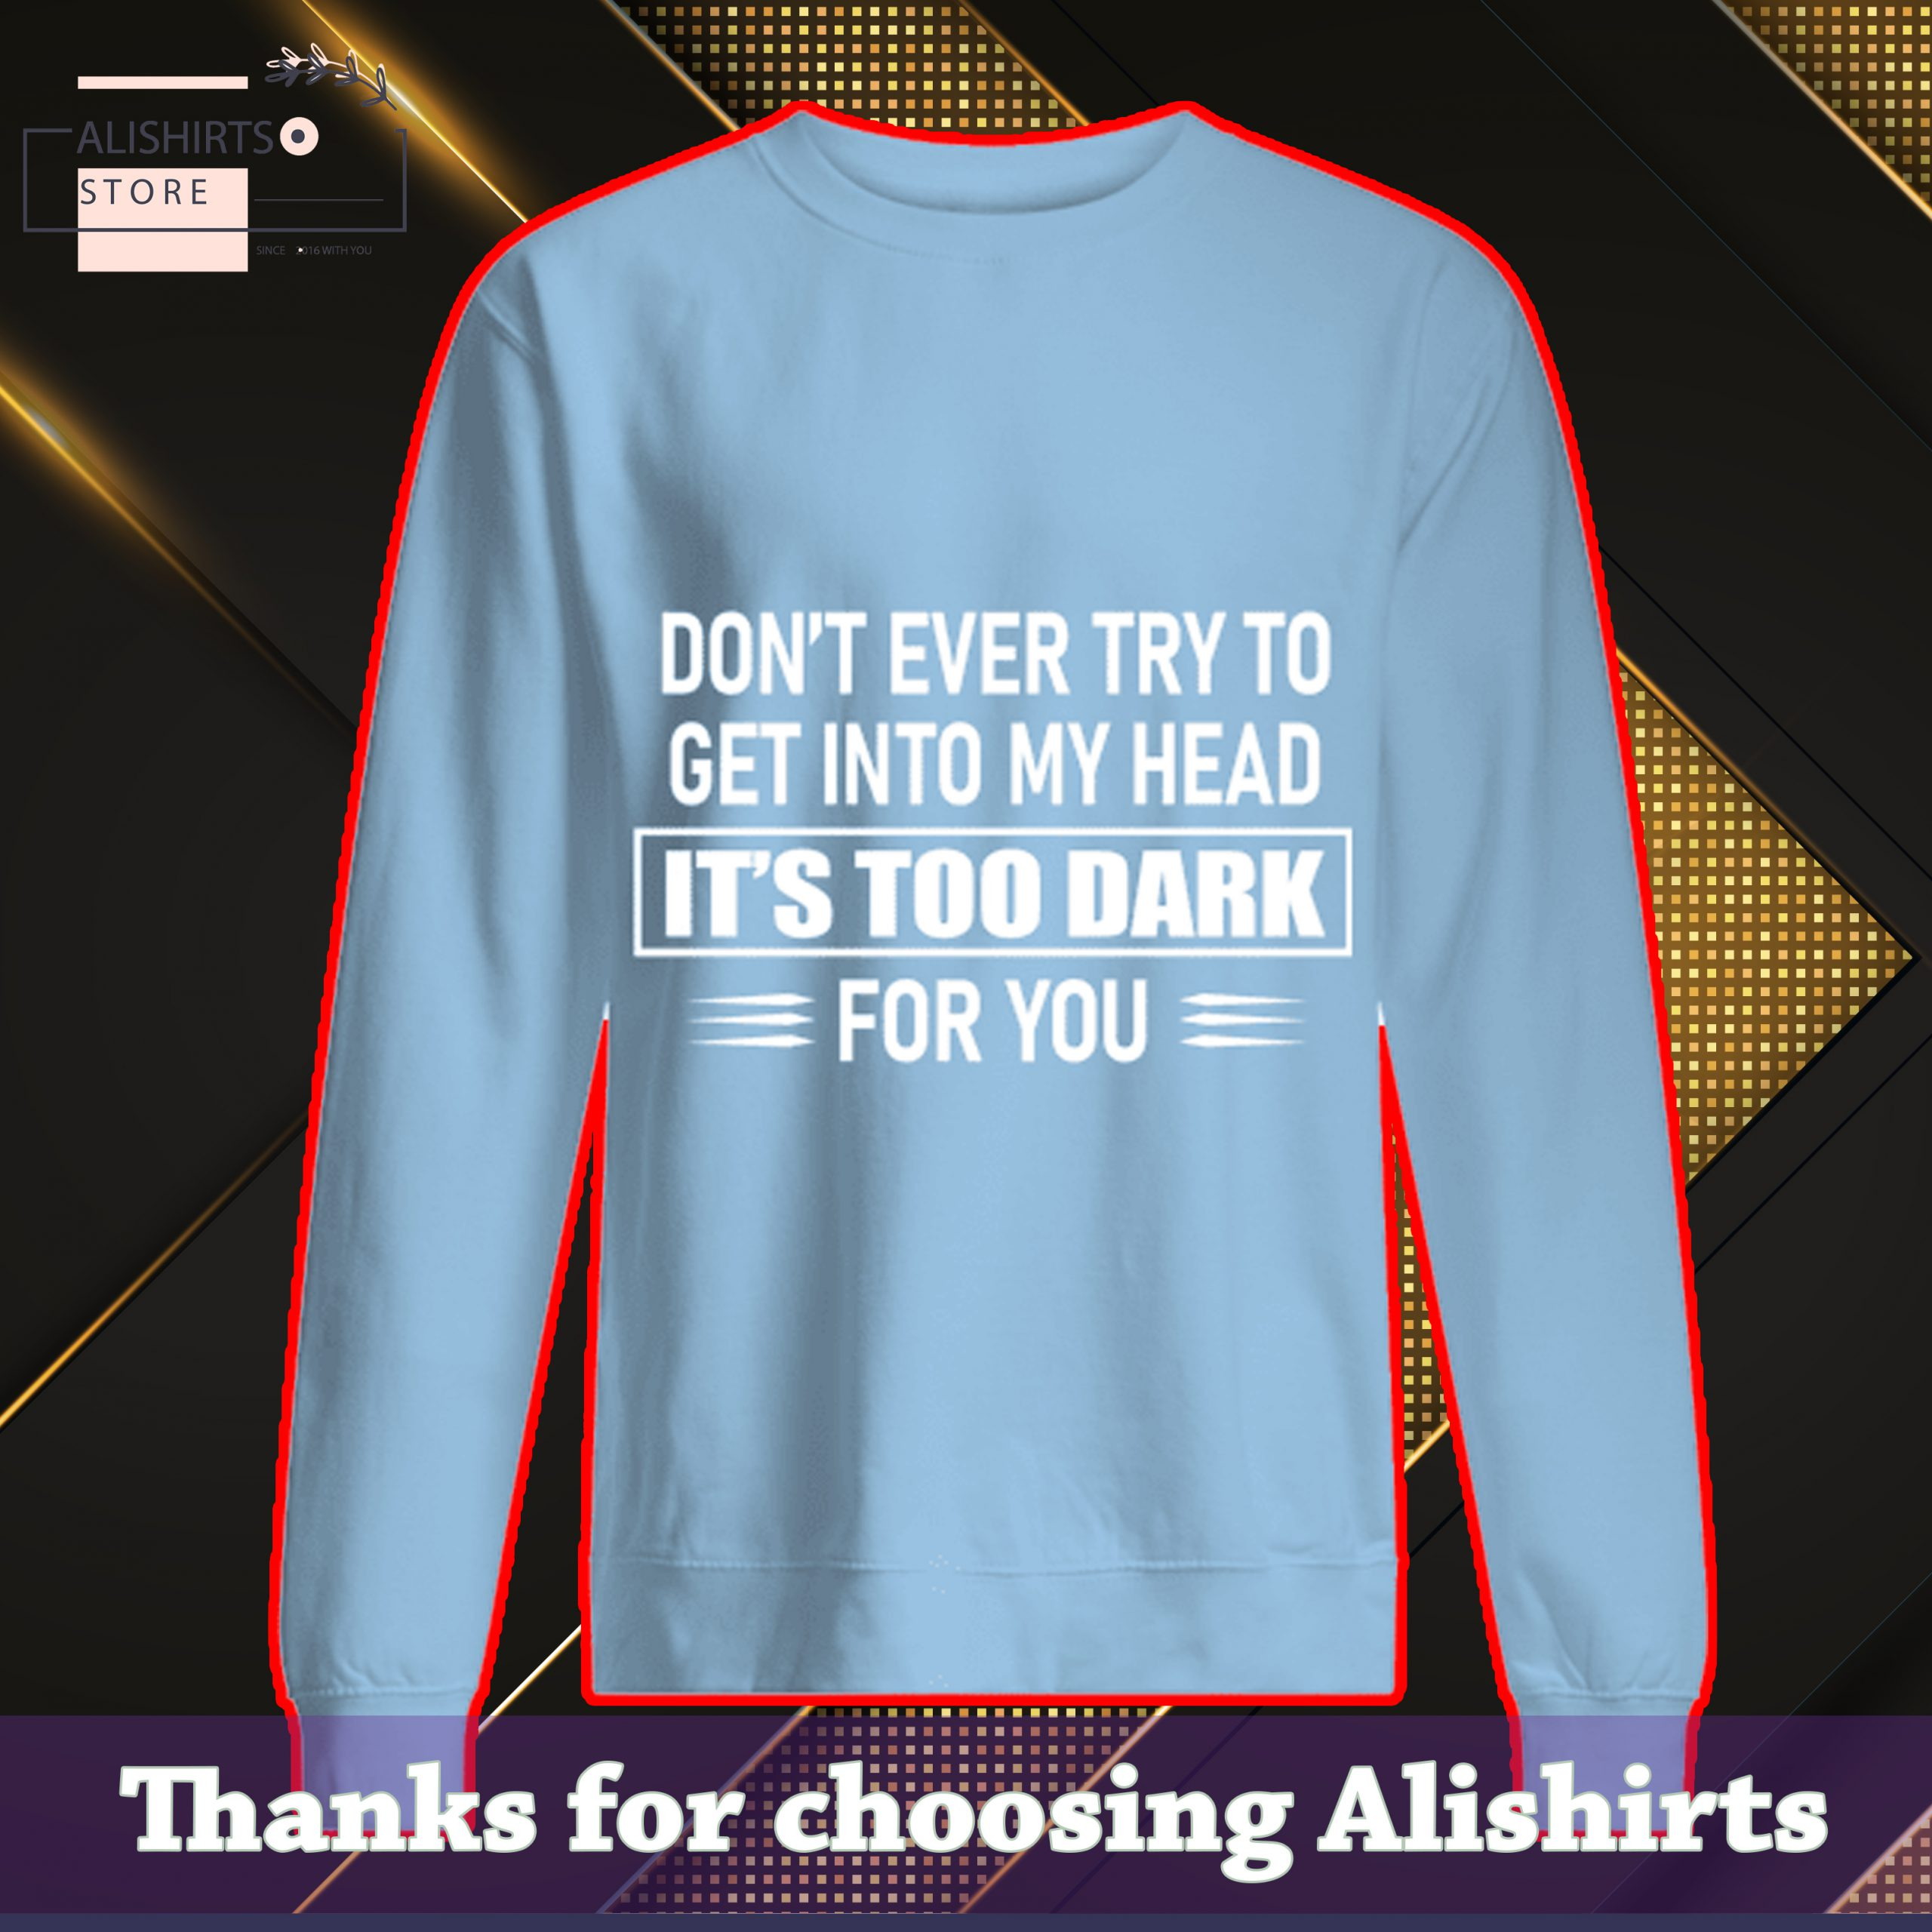 Don't ever try to get into my head it's too dark for you sweatshirt